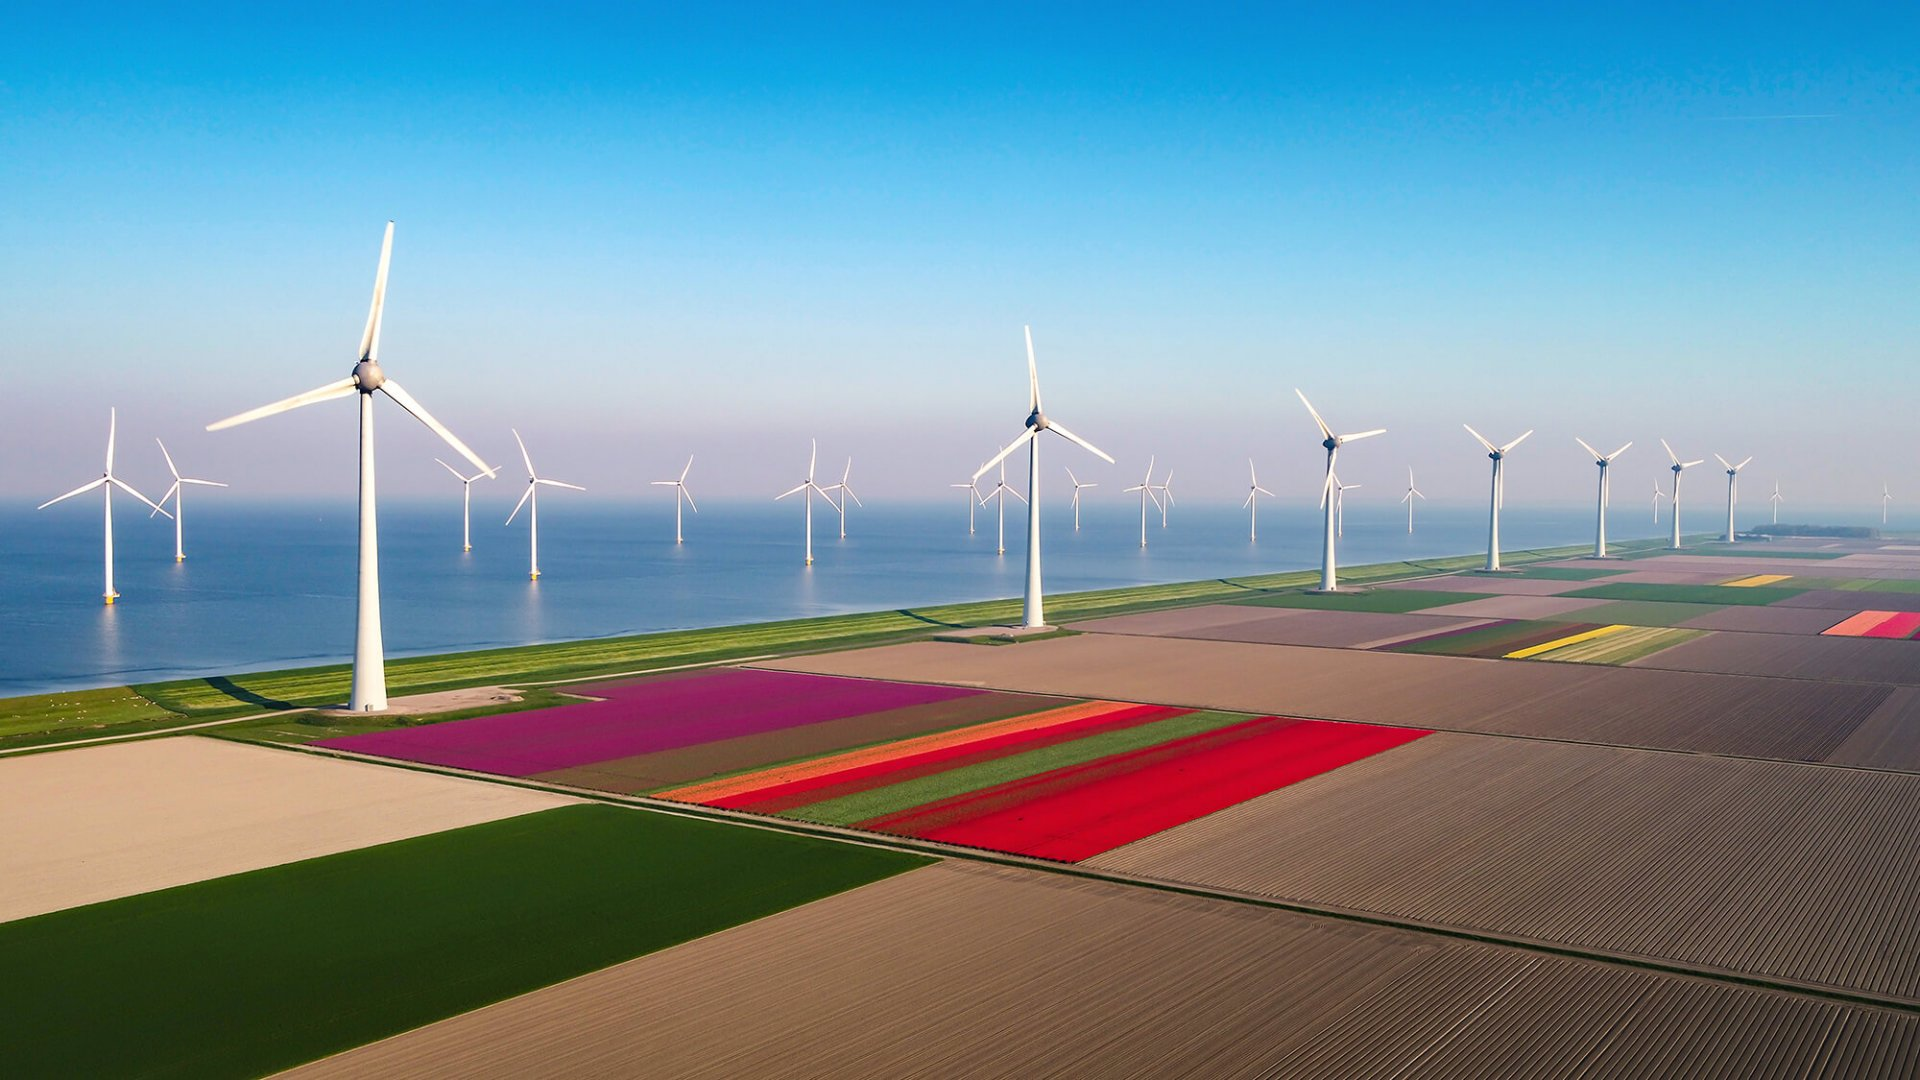 windmolens in nederland